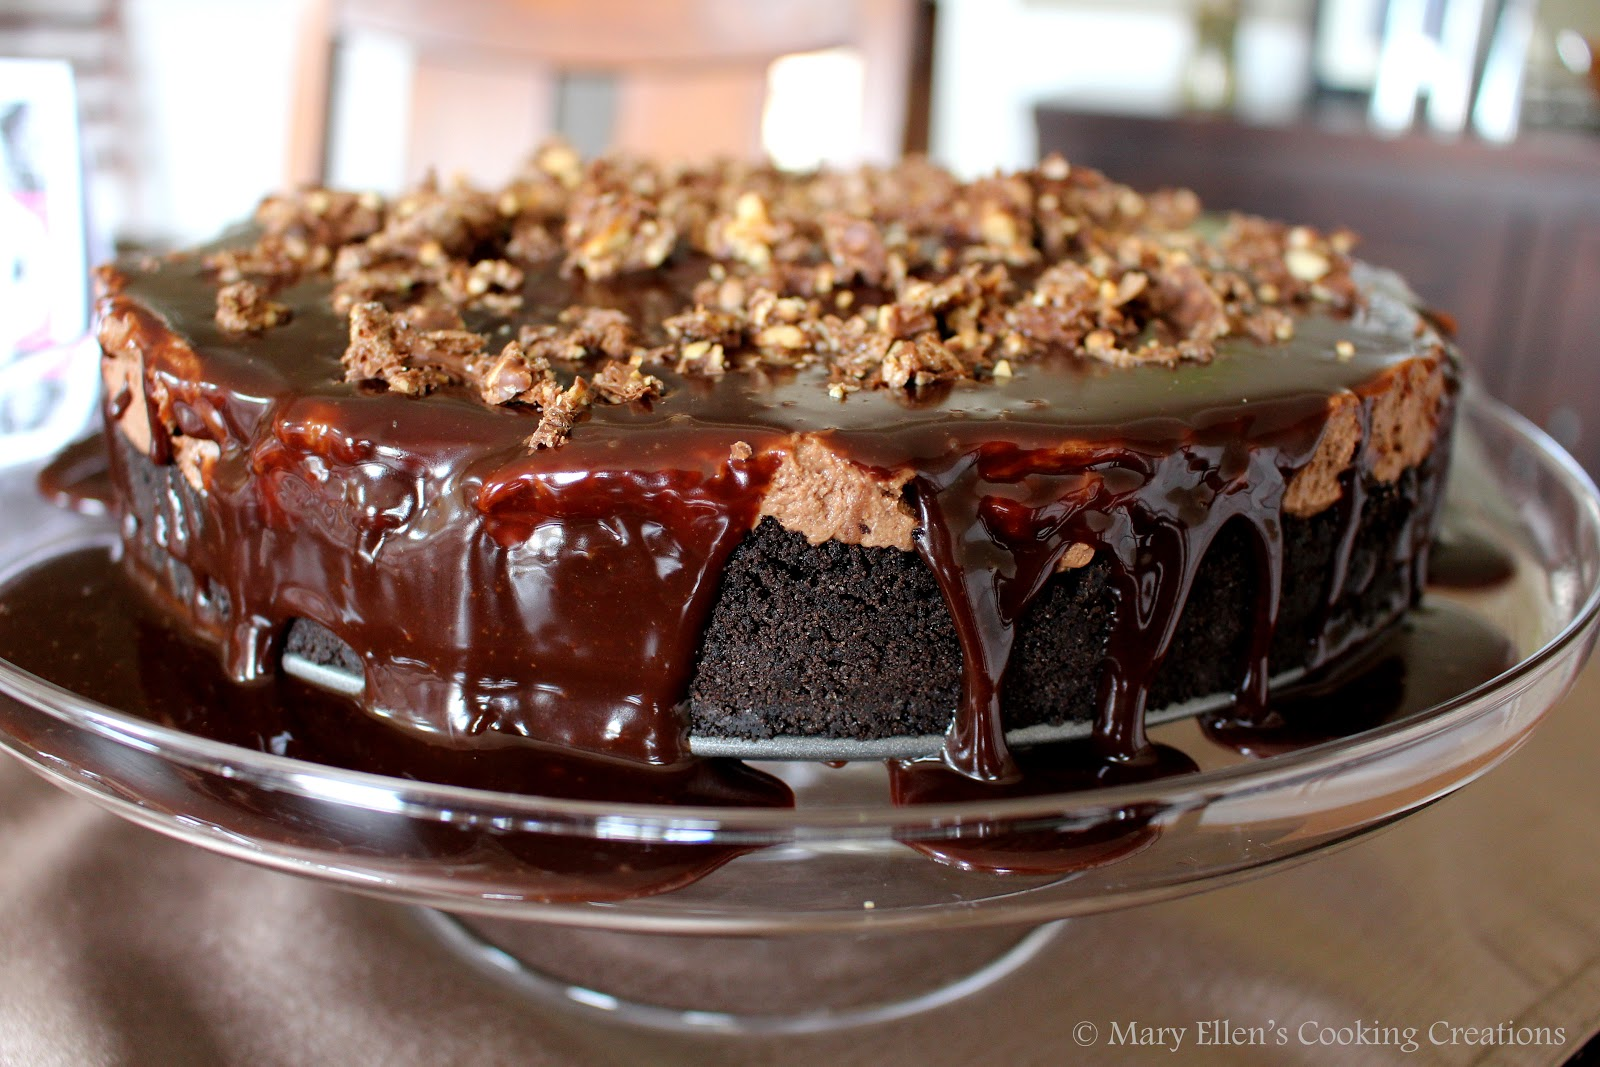 mary ellen 39 s cooking creations no bake nutella cheesecake. Black Bedroom Furniture Sets. Home Design Ideas